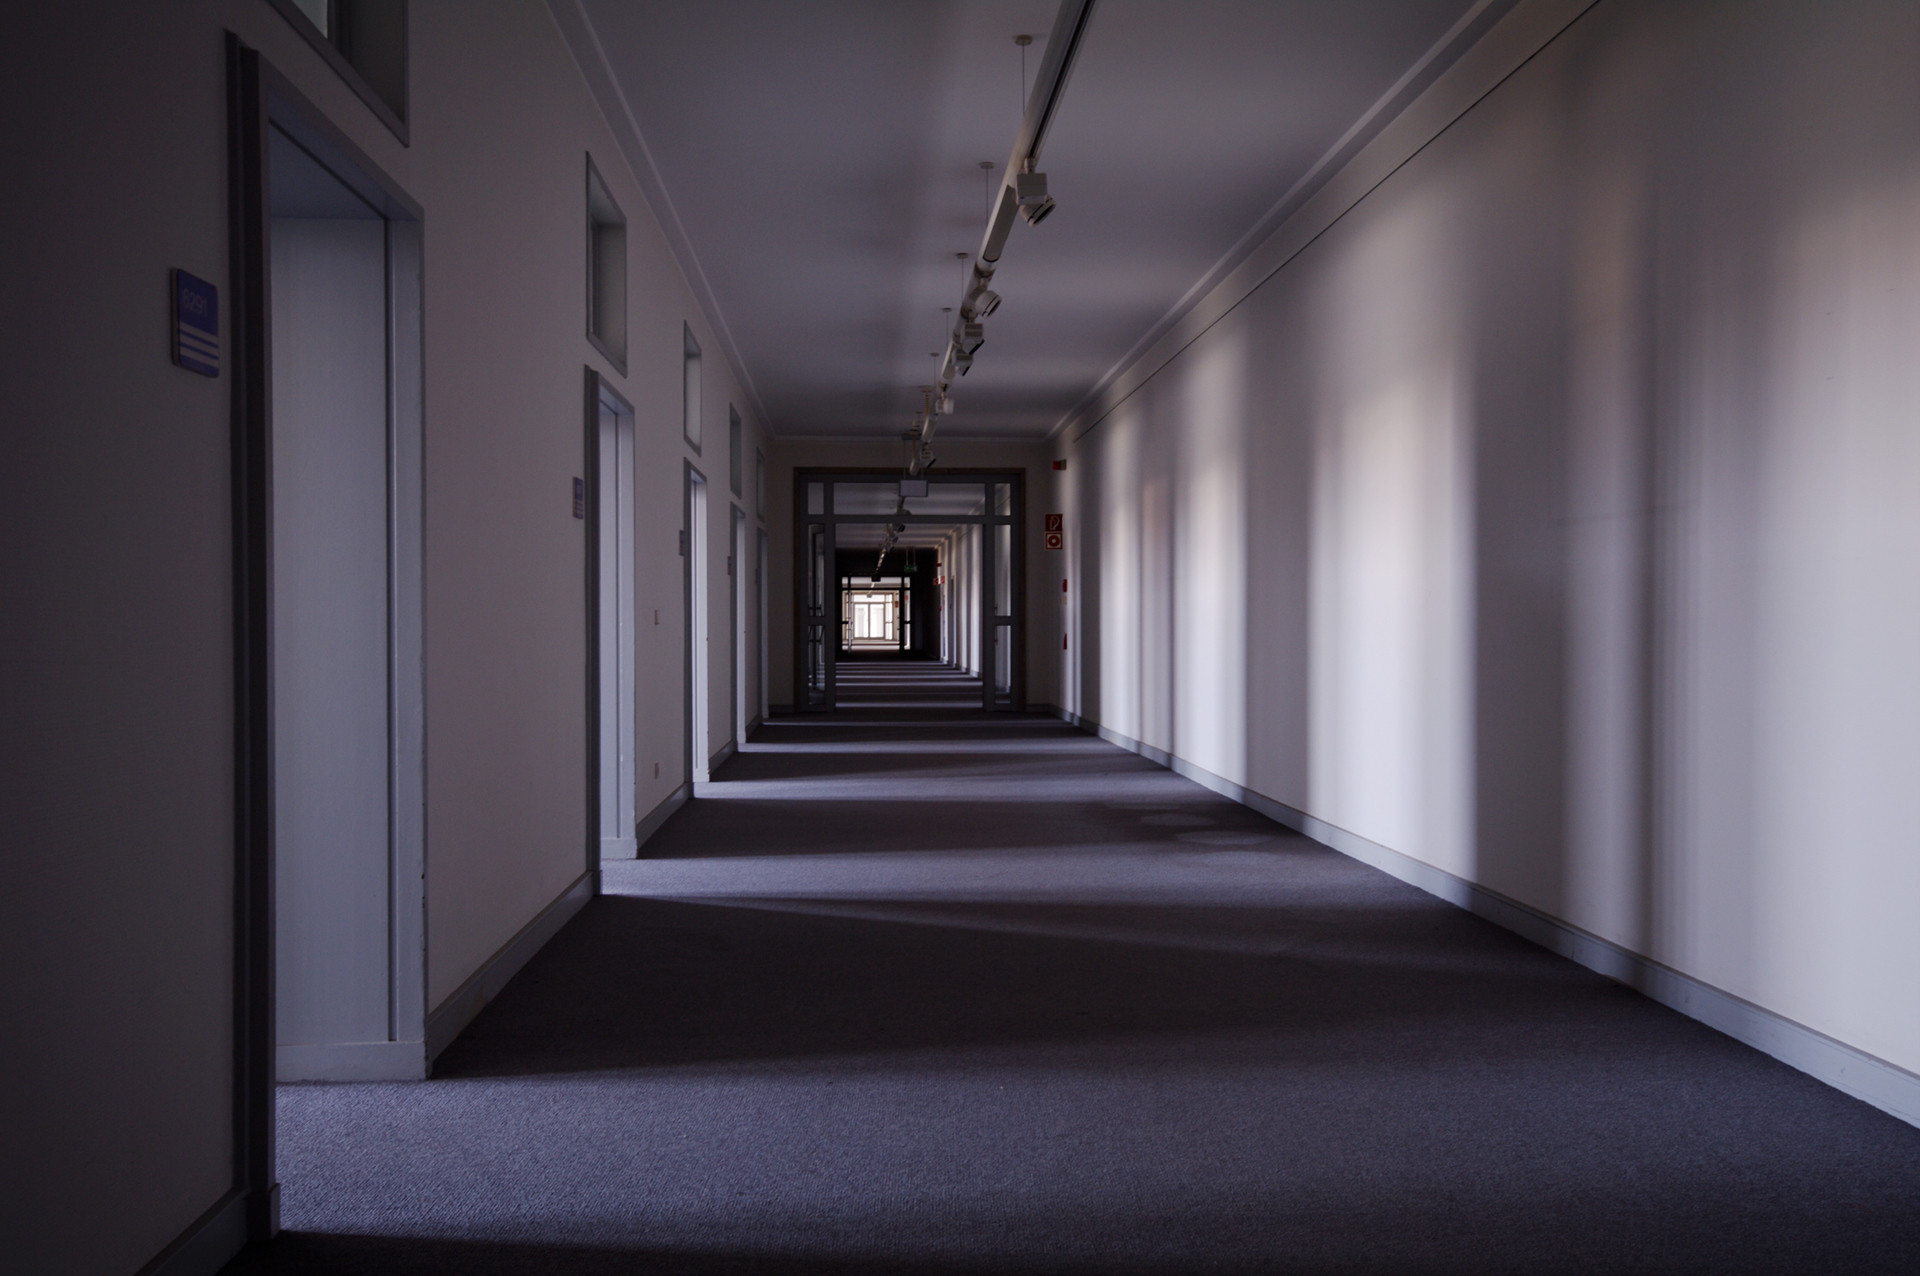 Corridor Pics, Dark Collection